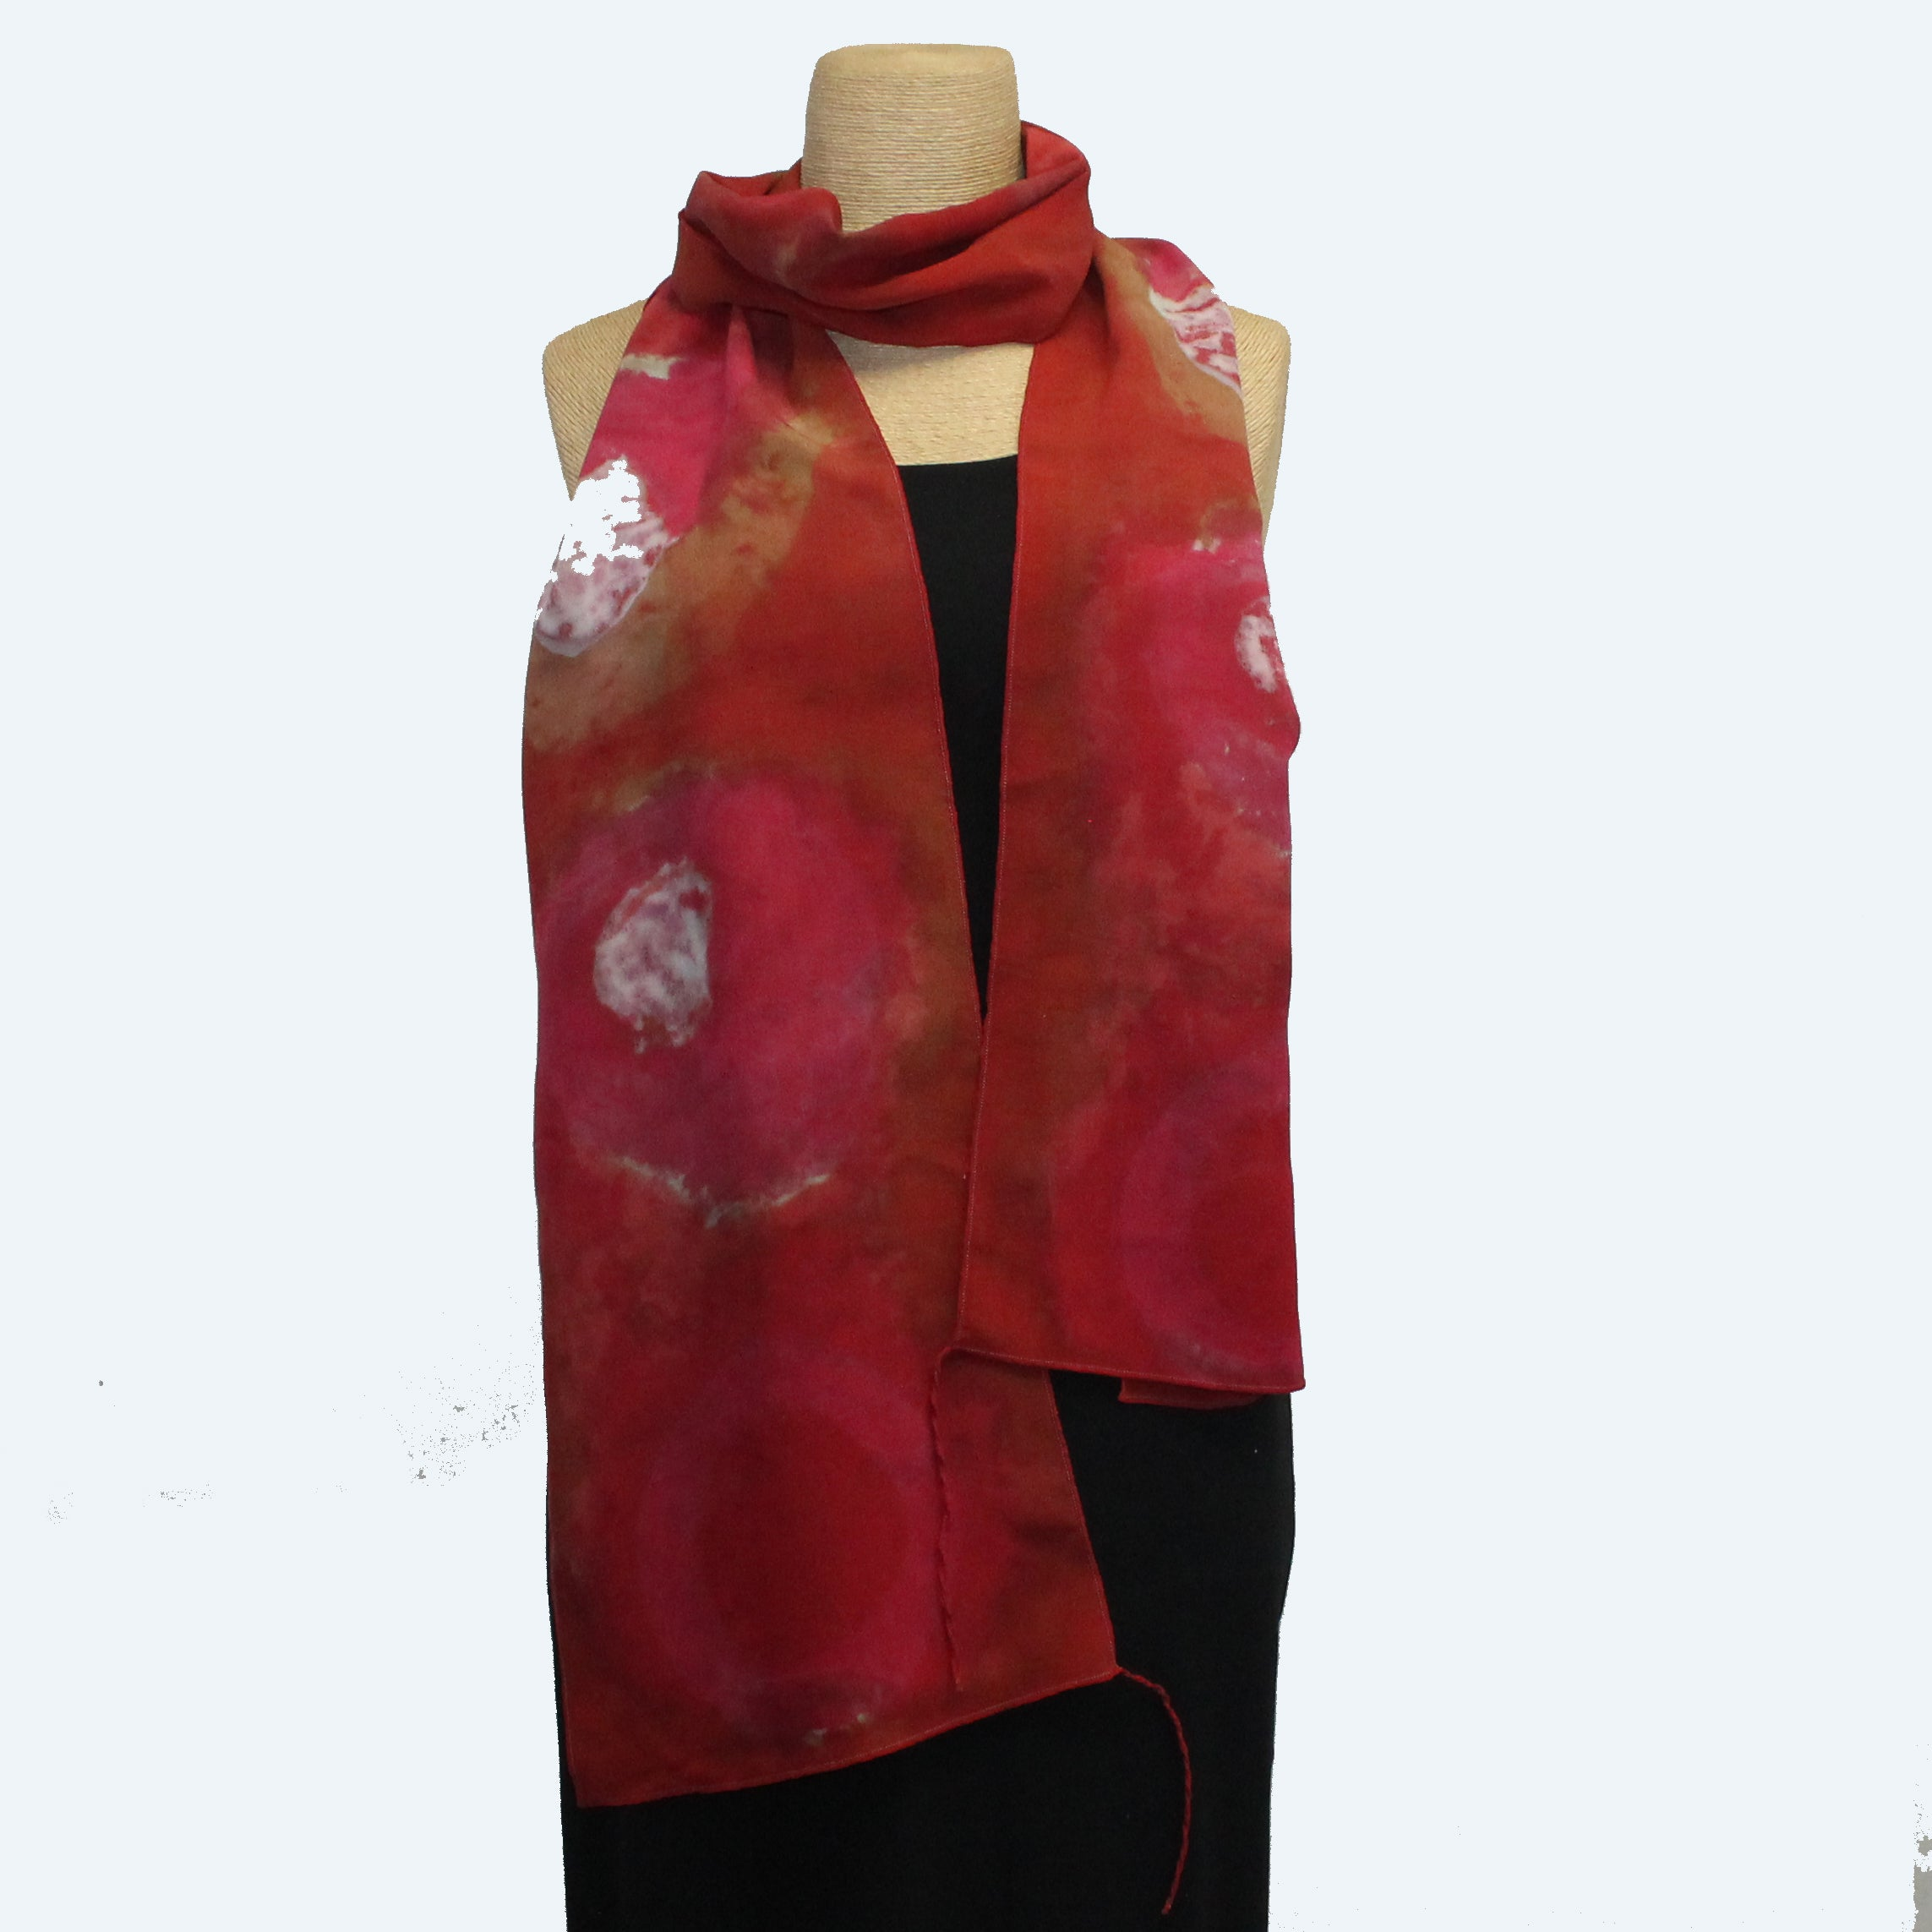 Judith Bird Scarf, Extra Special Silk Singles, Red Suns in Space